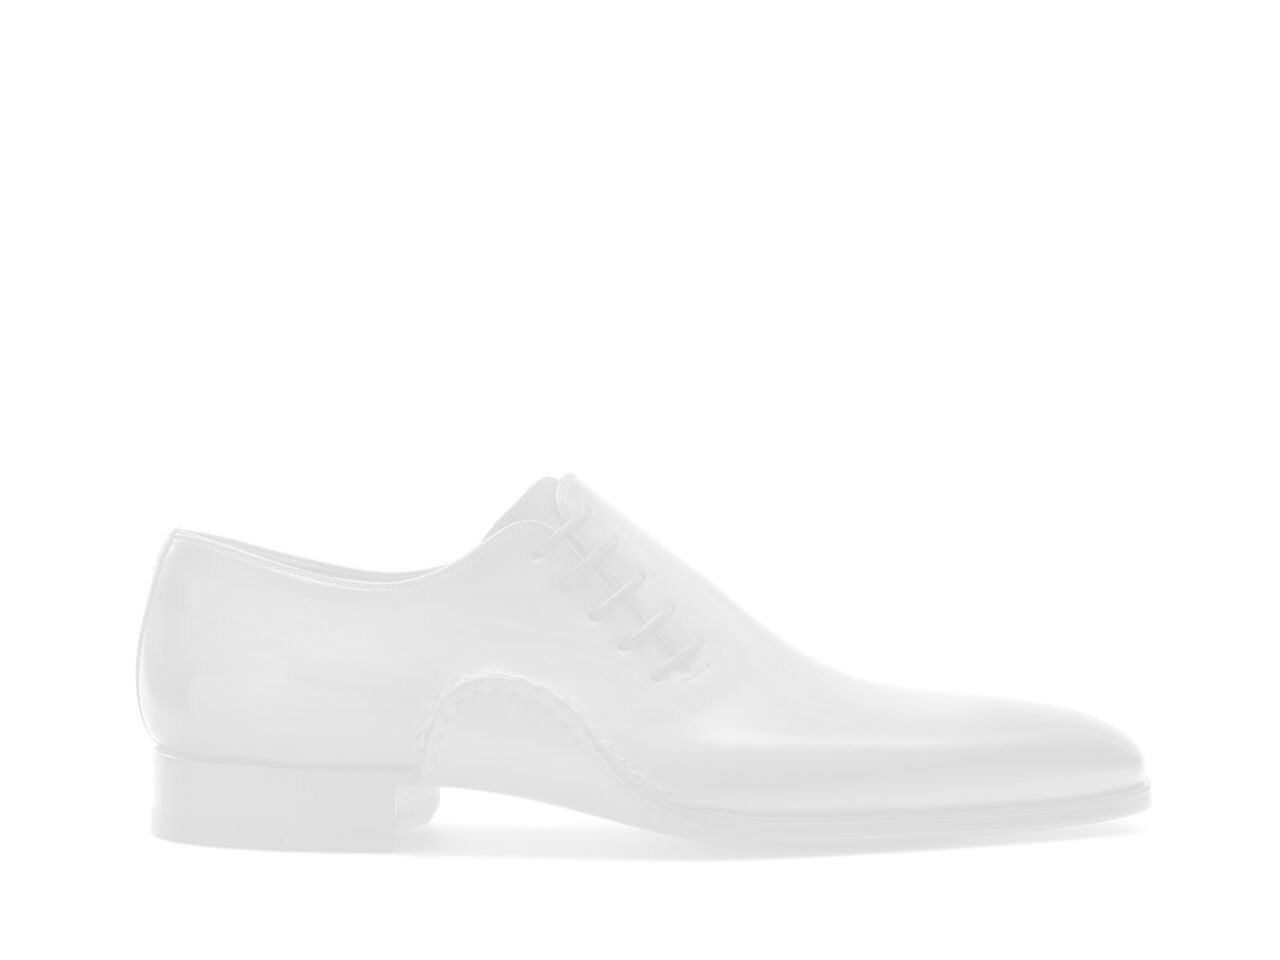 Side view of the Magnanni Caitin Lo Tabaco Men's Sneakers